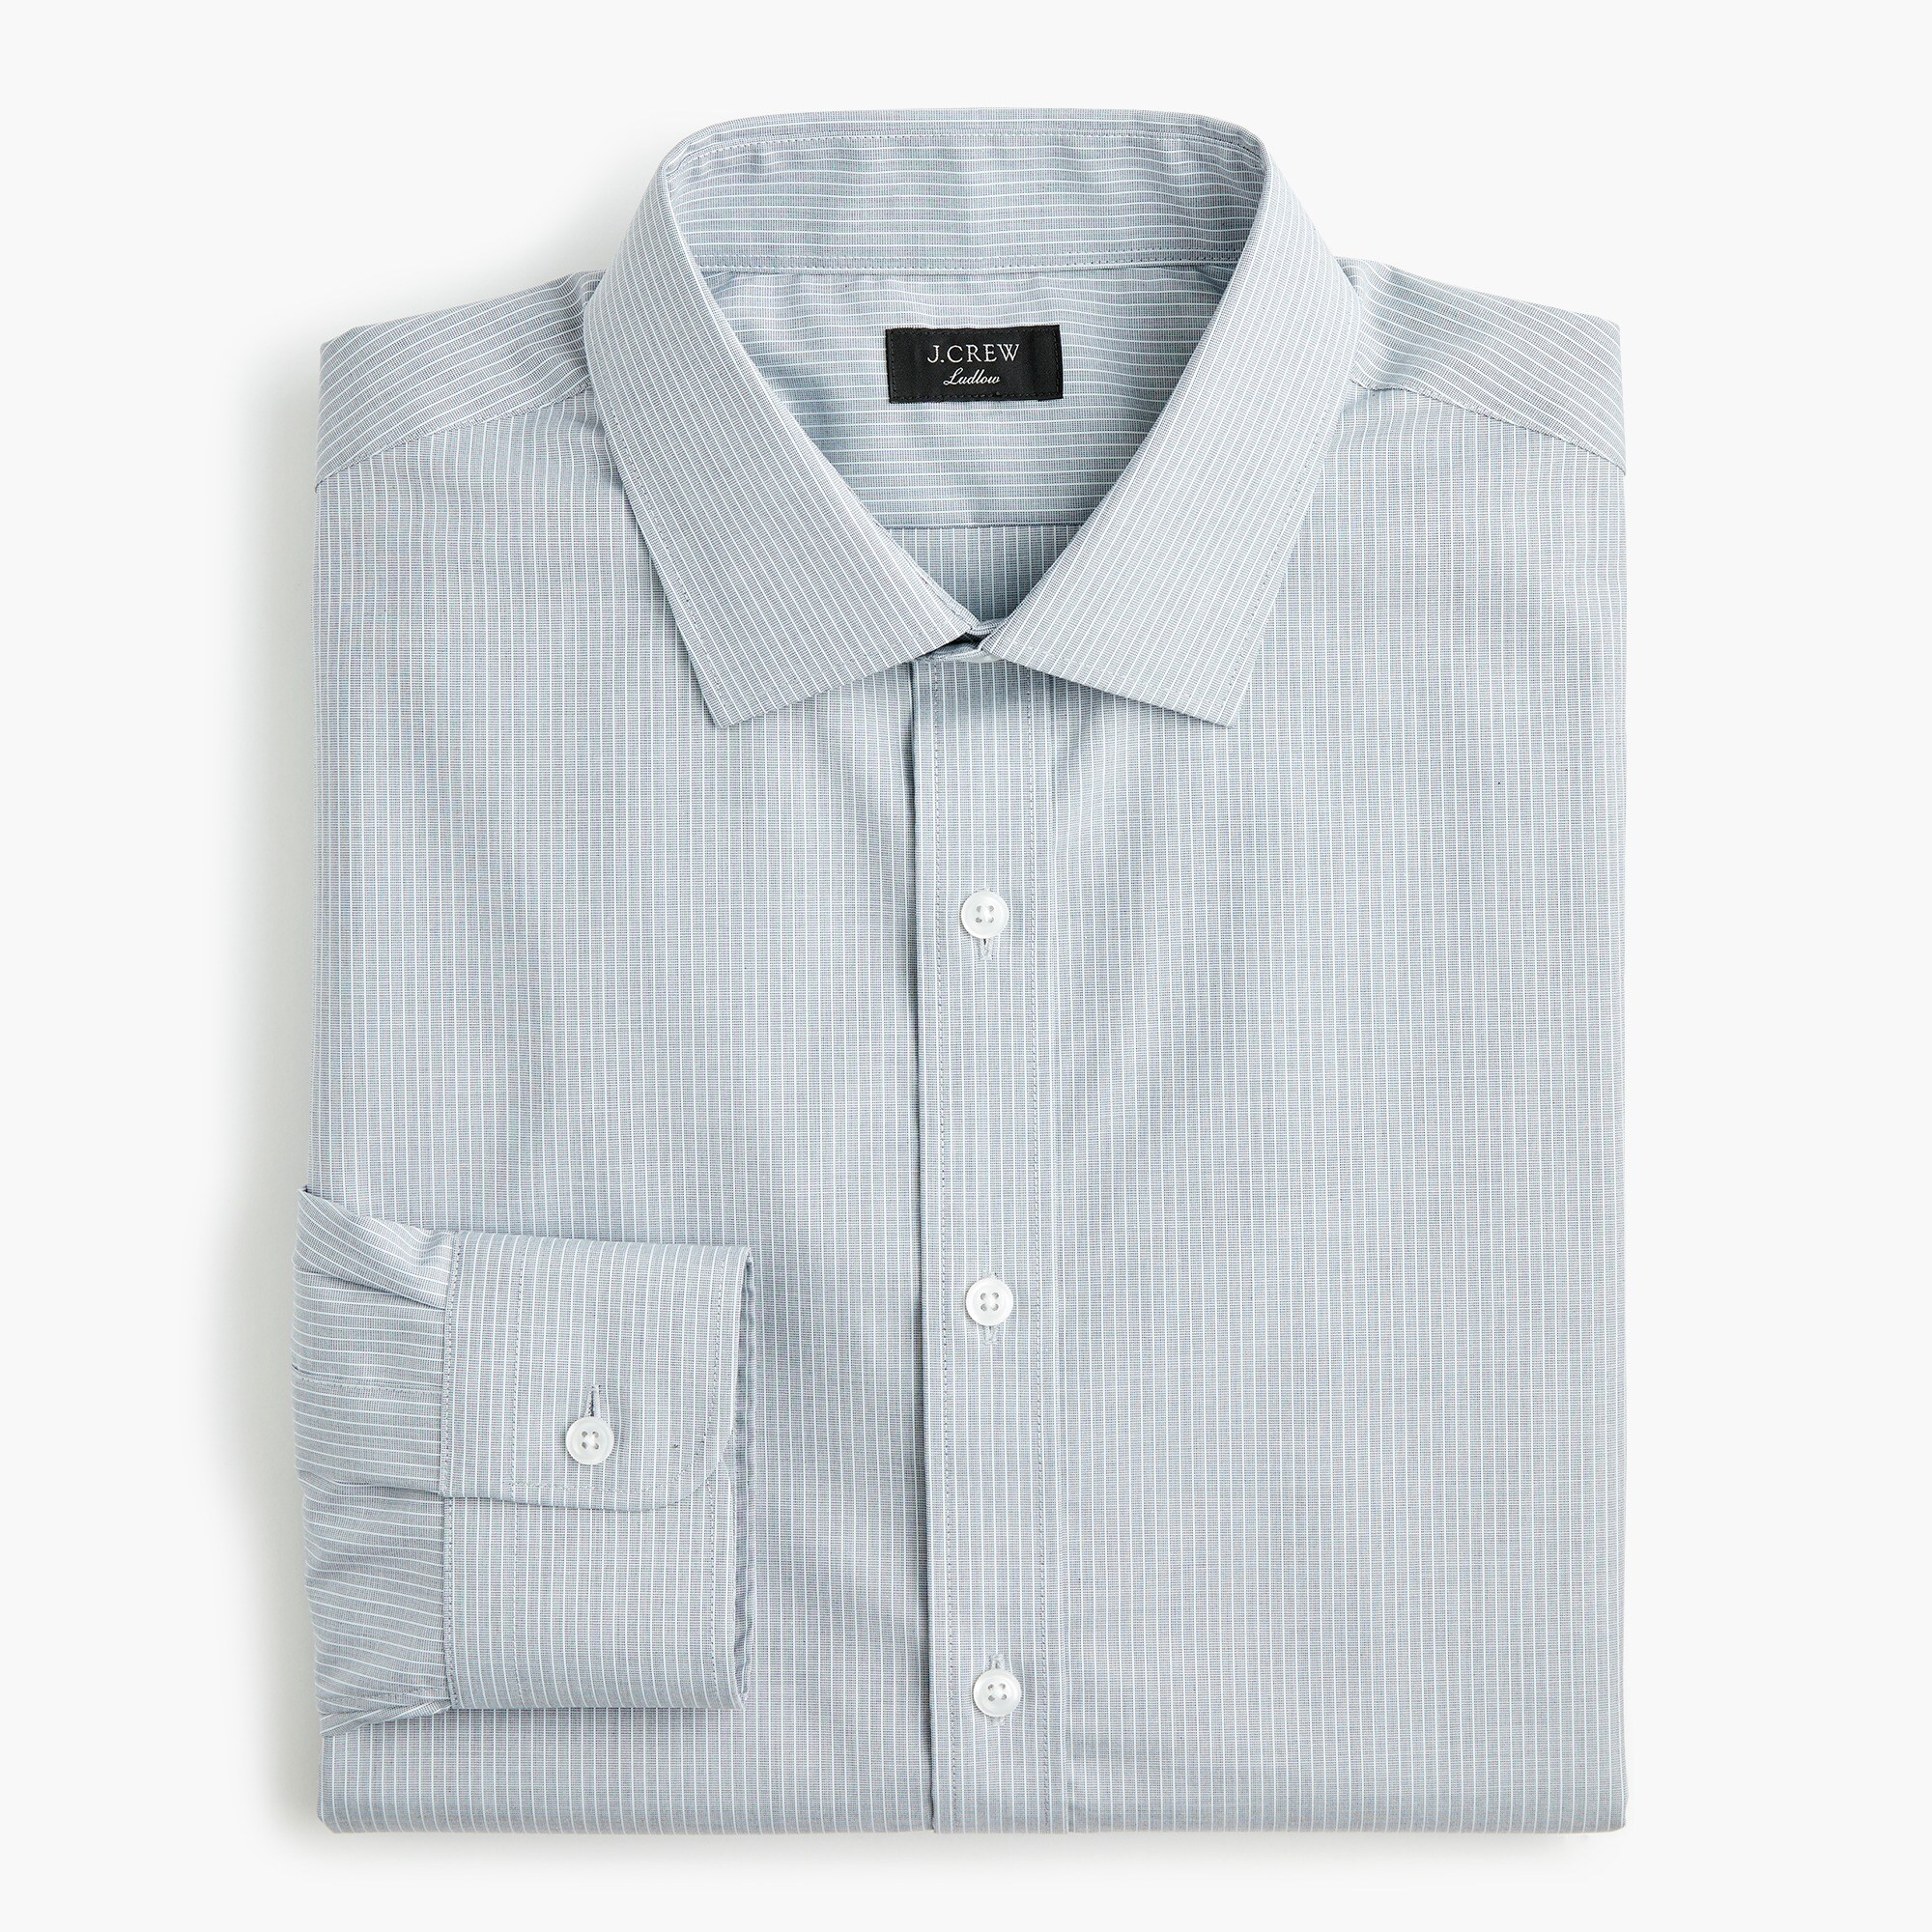 mens Ludlow Slim-fit stretch two-ply easy-care cotton dress shirt in sky blue